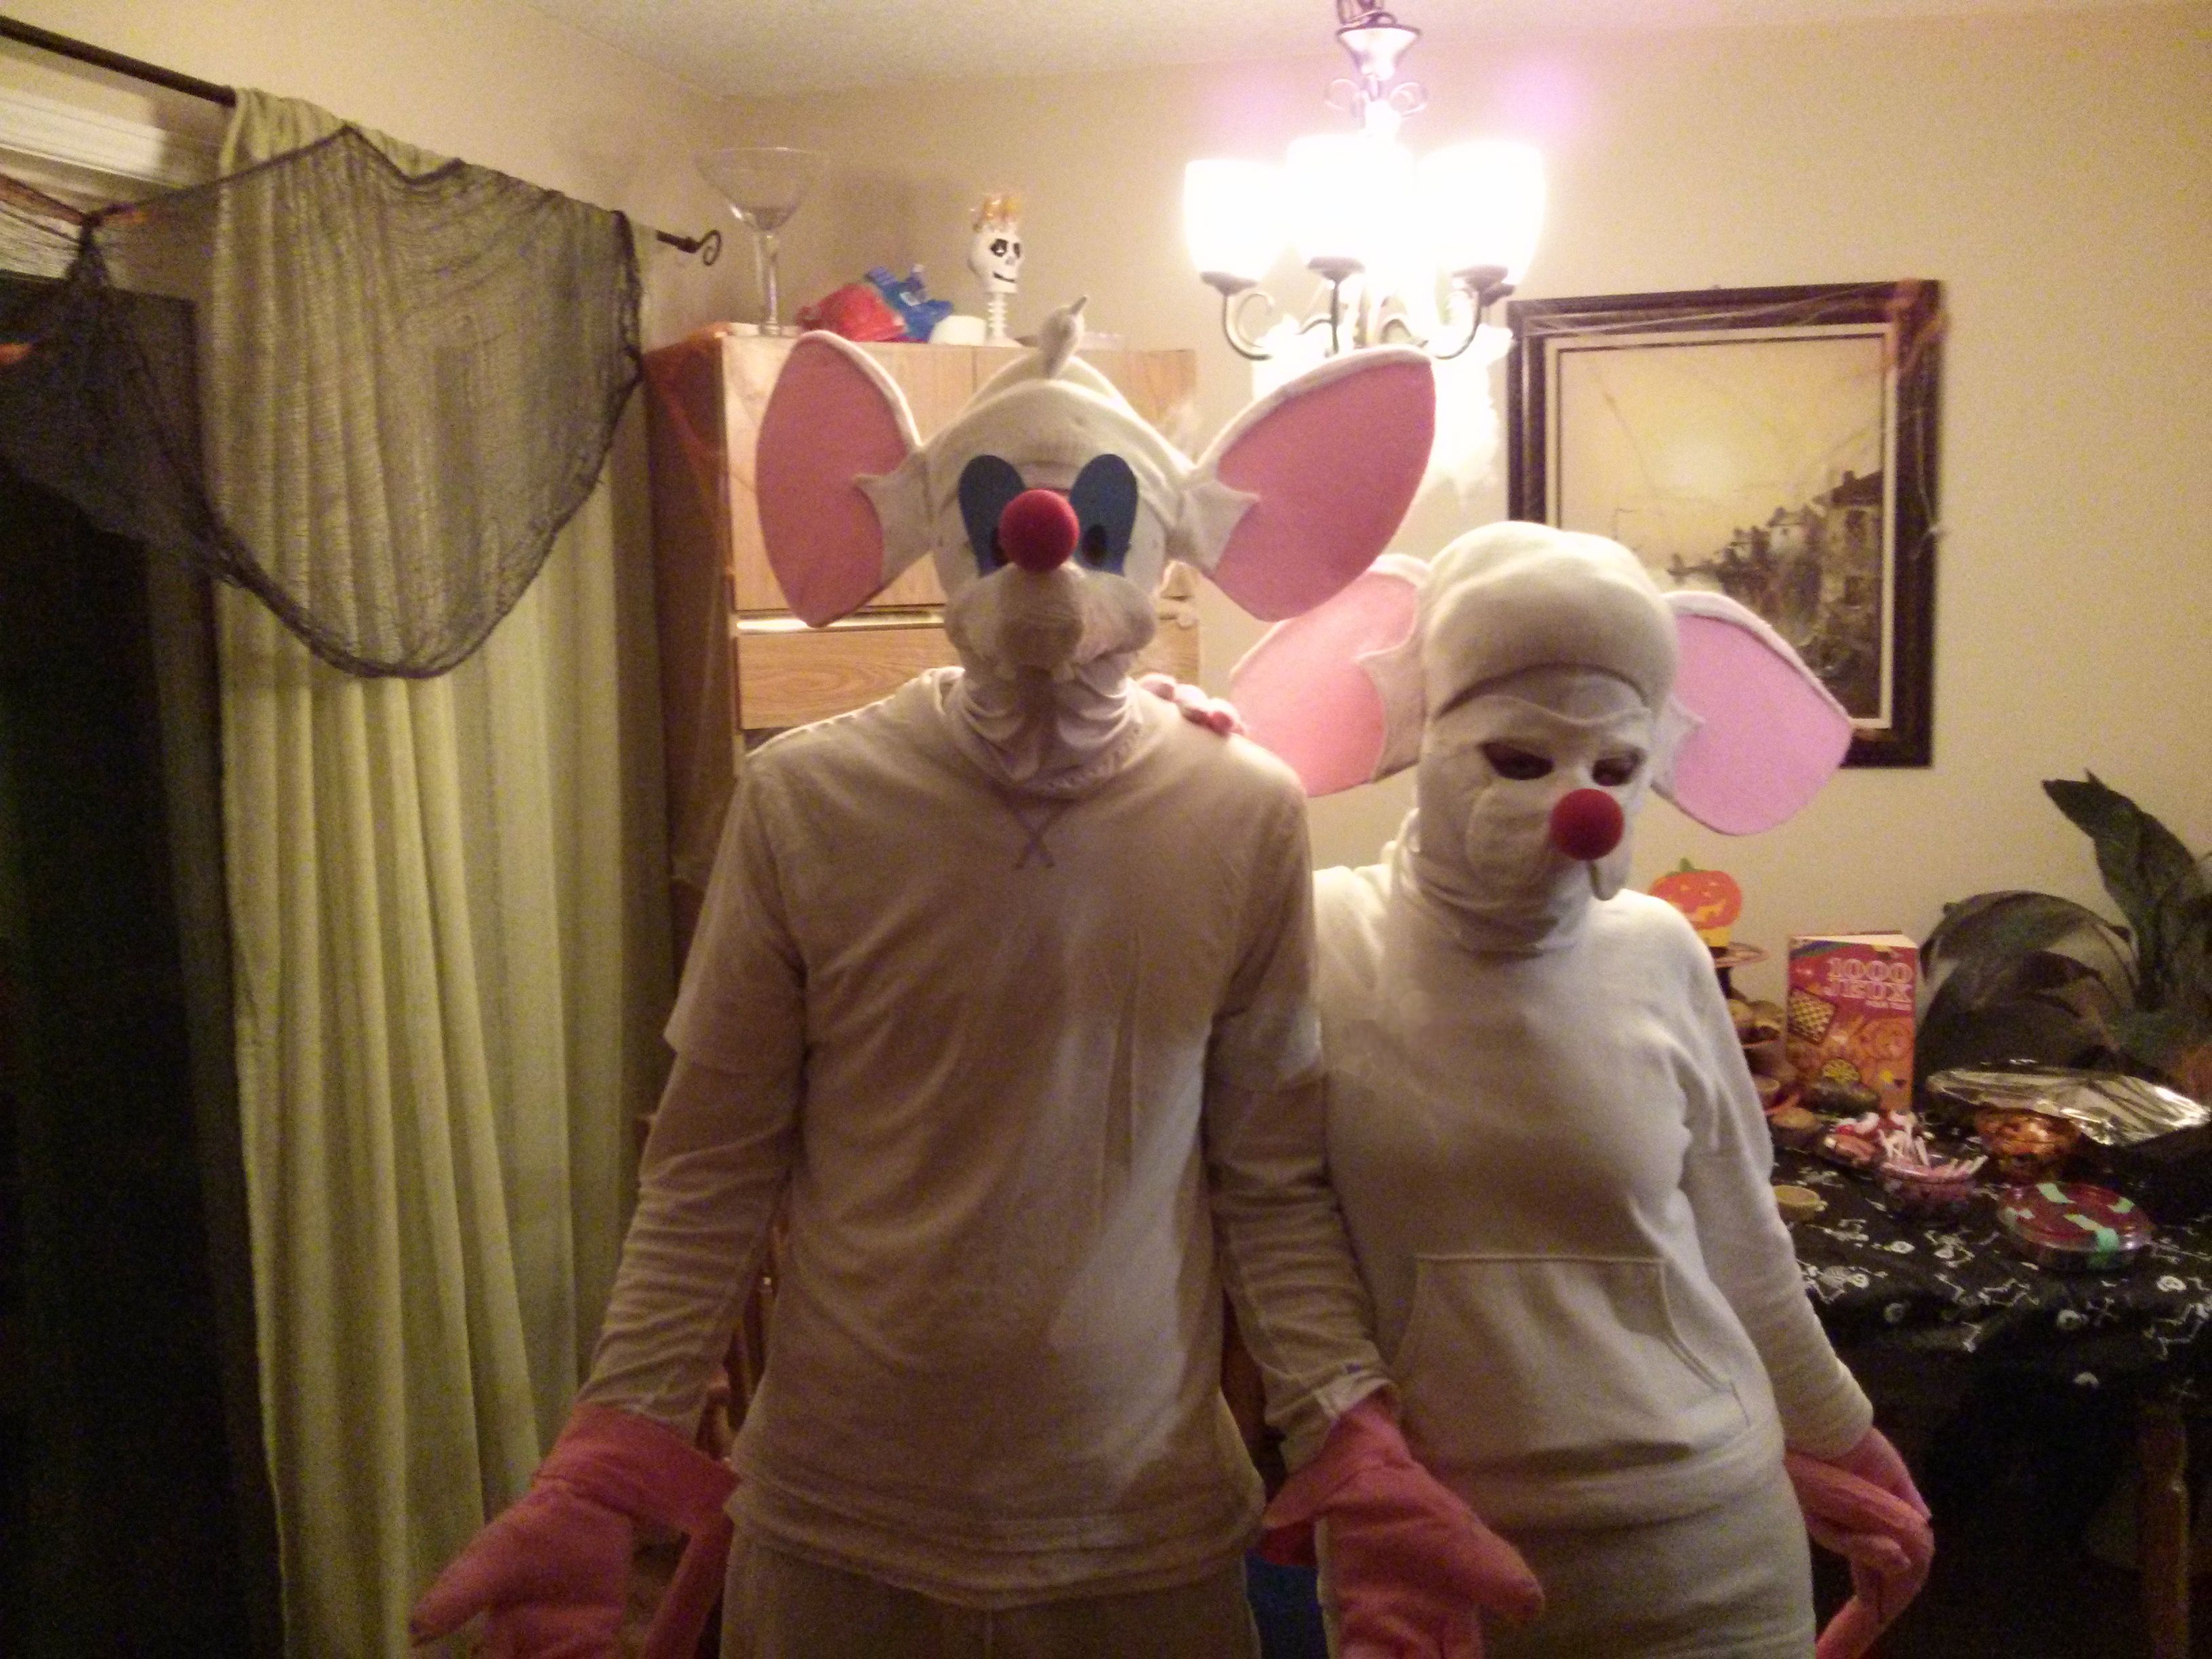 alexander as pinky and meagan as brain from pinky and the brain animaniacs as well